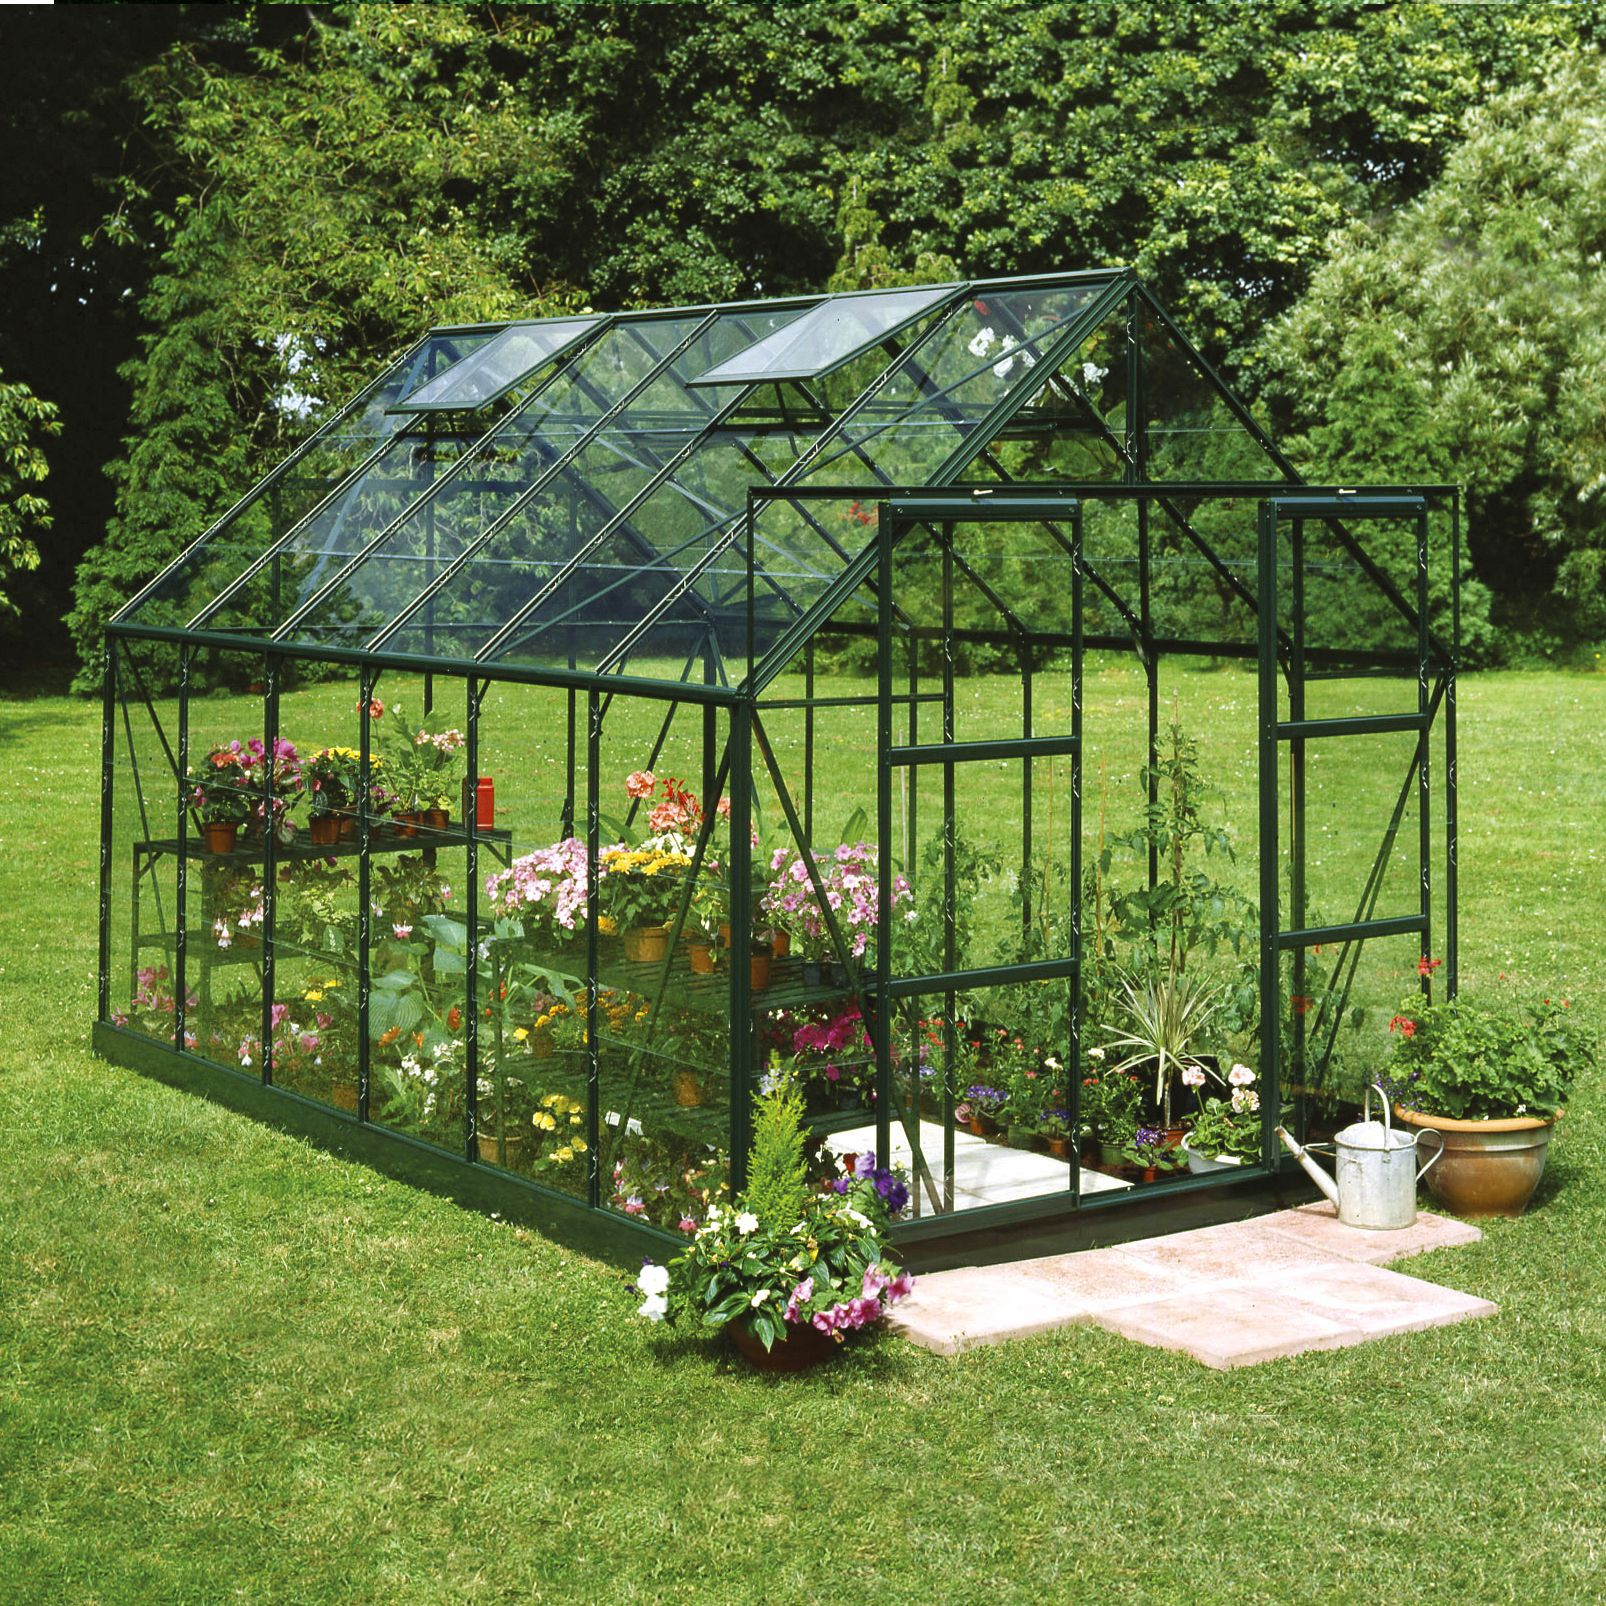 B&Q Metal 8x14 Horticultural glass greenhouse